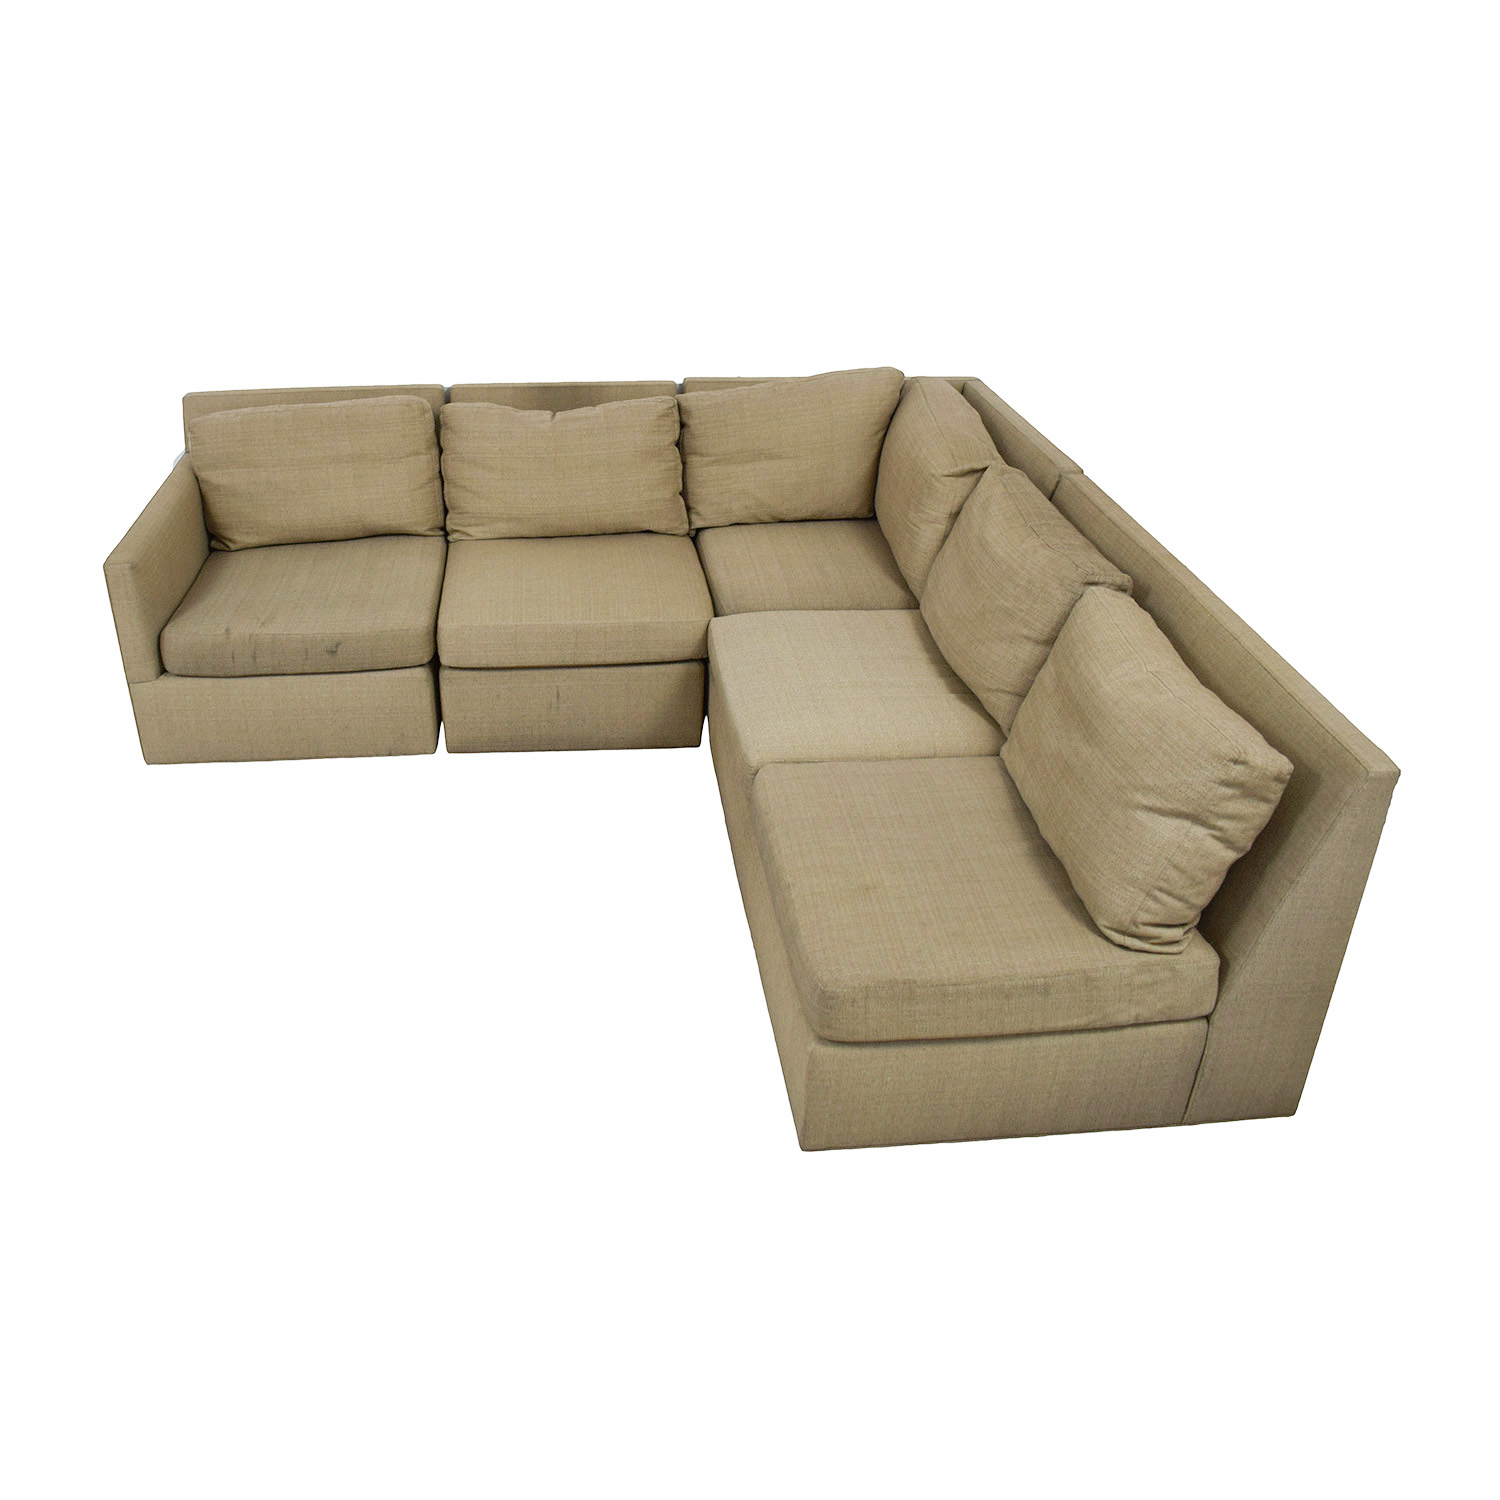 Crate & Barrel Crate & Barrel Beige L-Shaped Sectional used